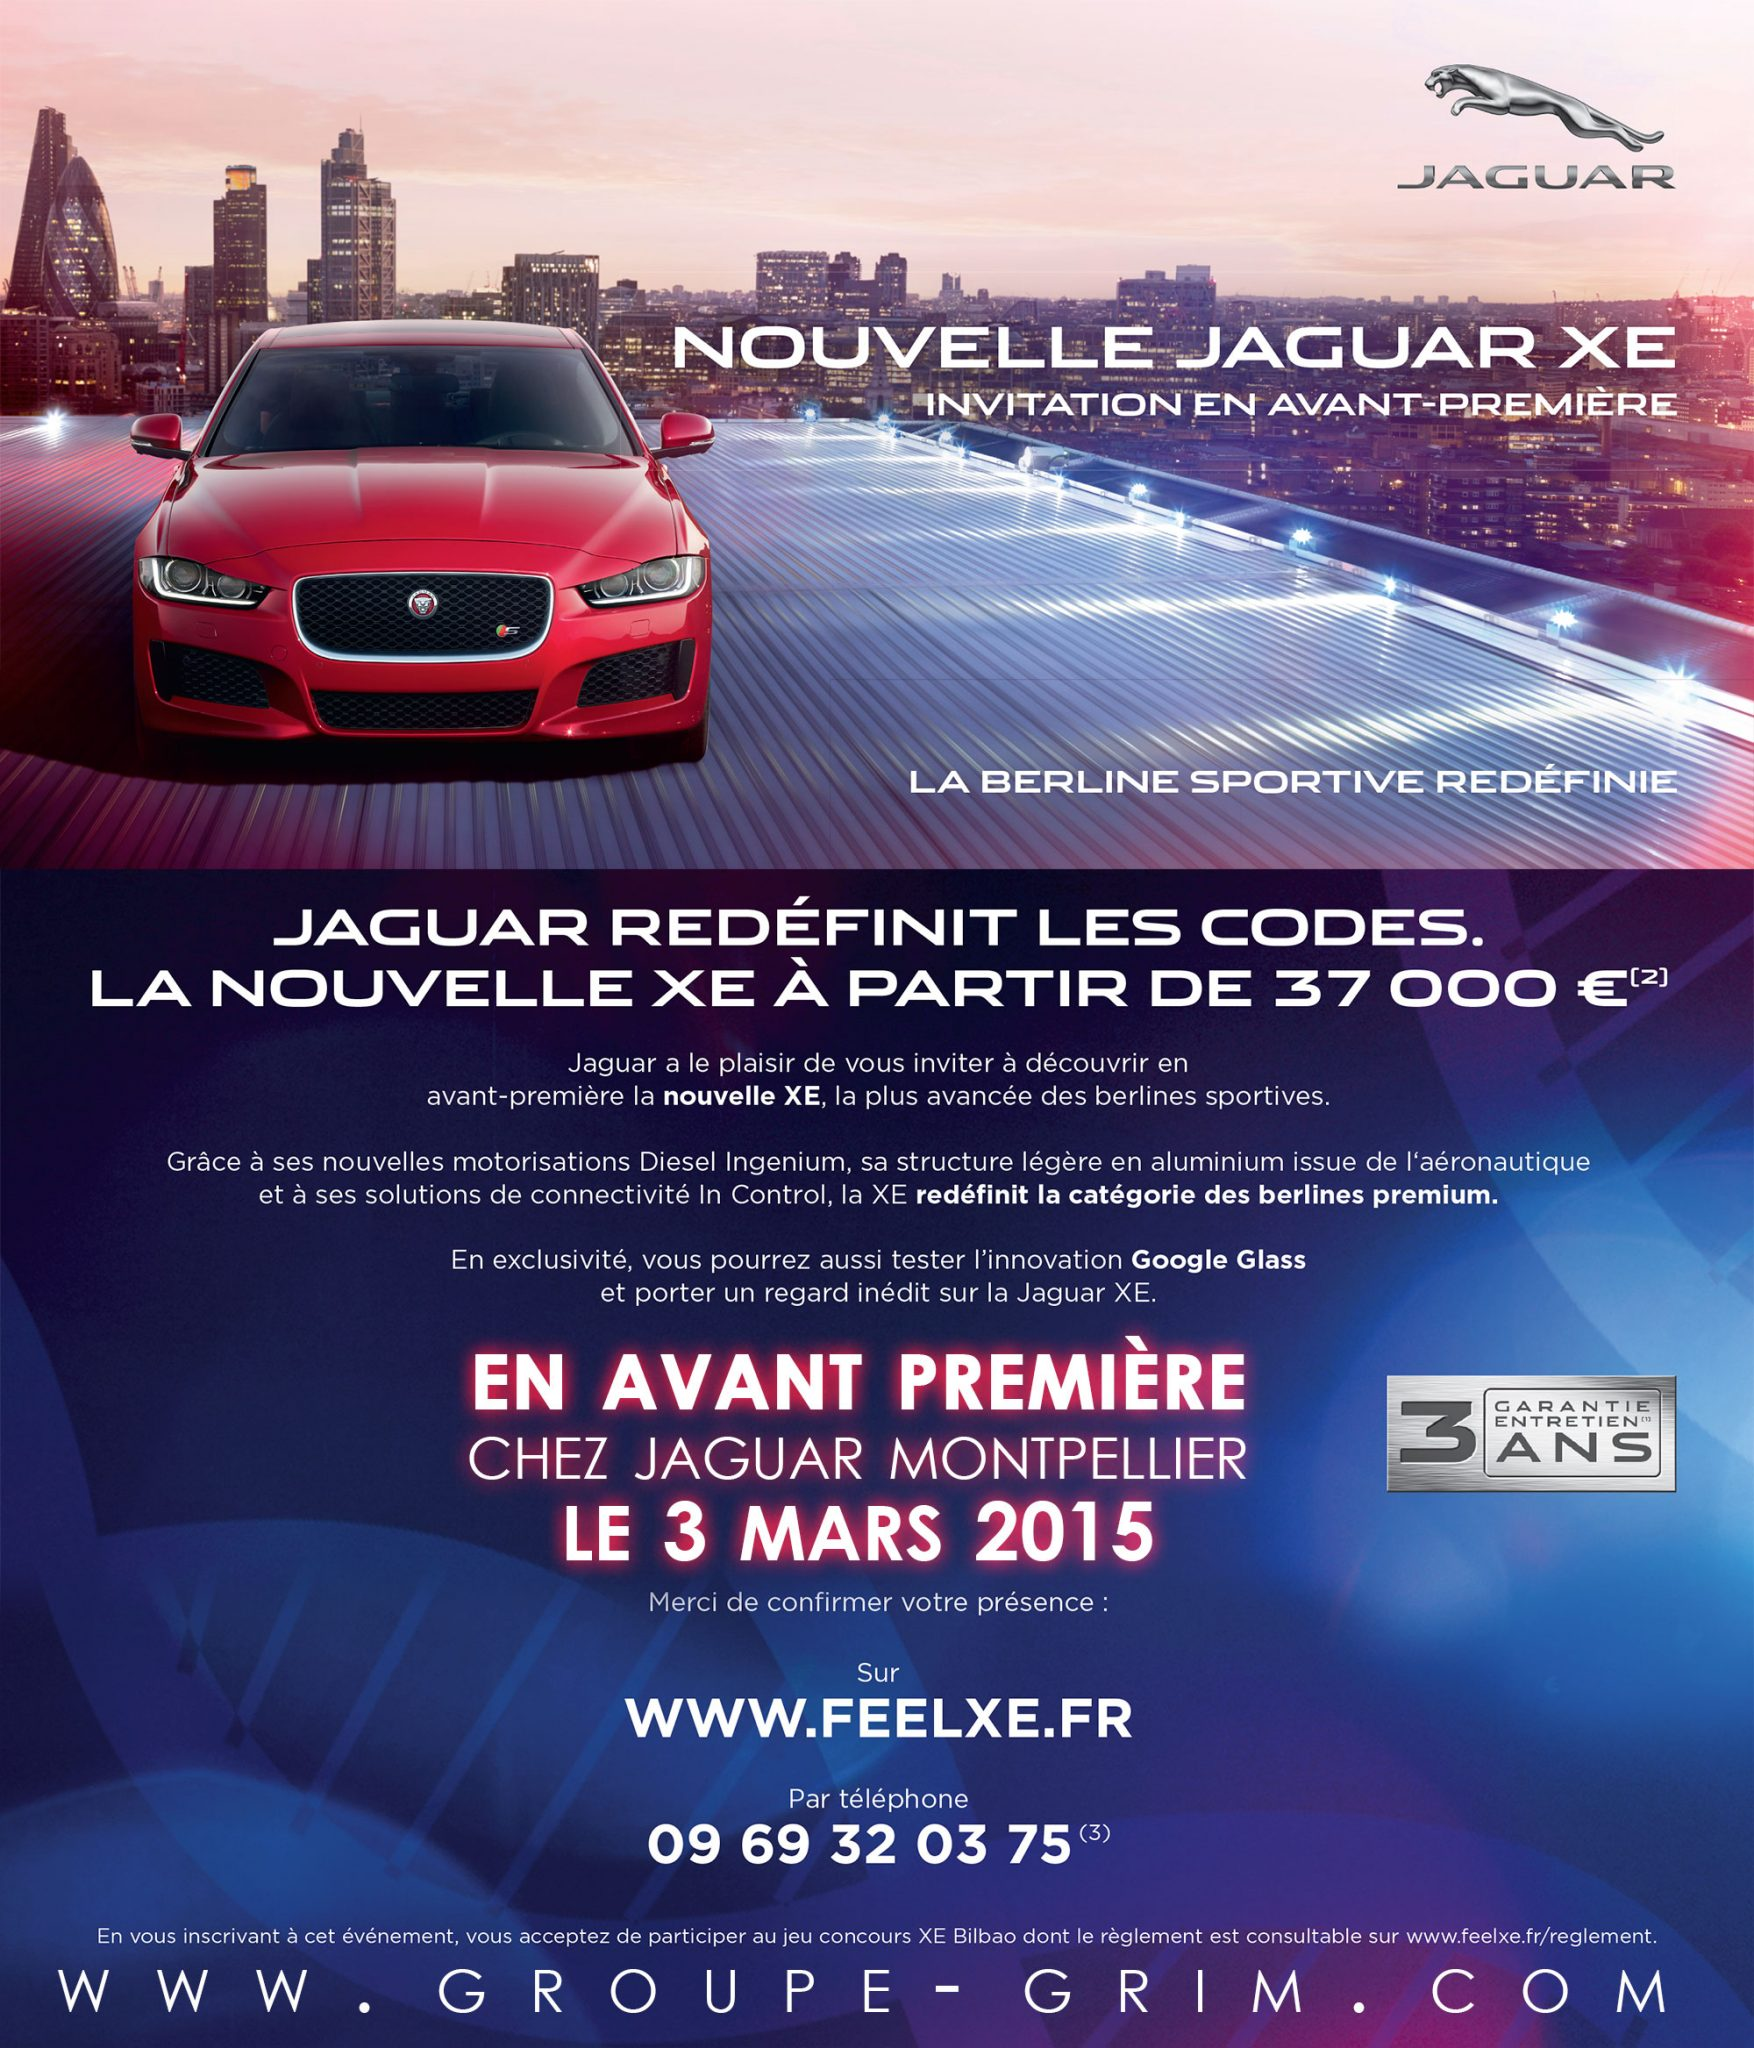 nouvelle jaguar xe invitation en avant premi re. Black Bedroom Furniture Sets. Home Design Ideas